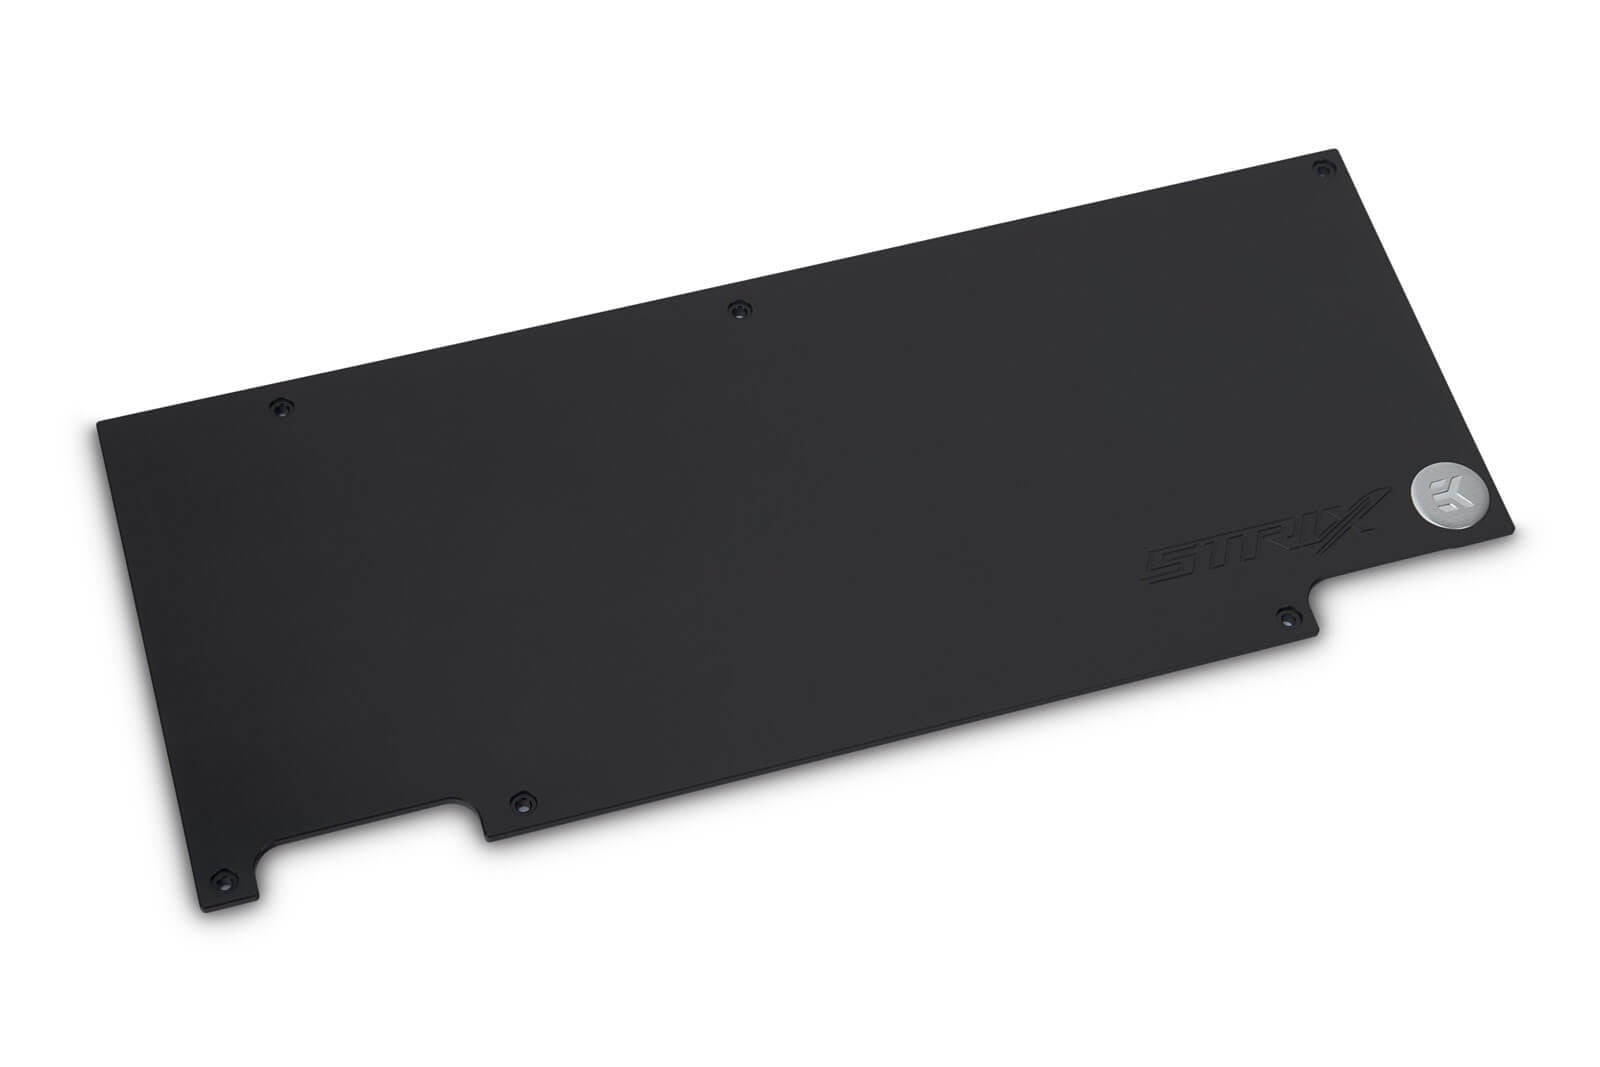 EK-FC1080 GTX Ti Strix Backplate – Black (rev. 2.0)